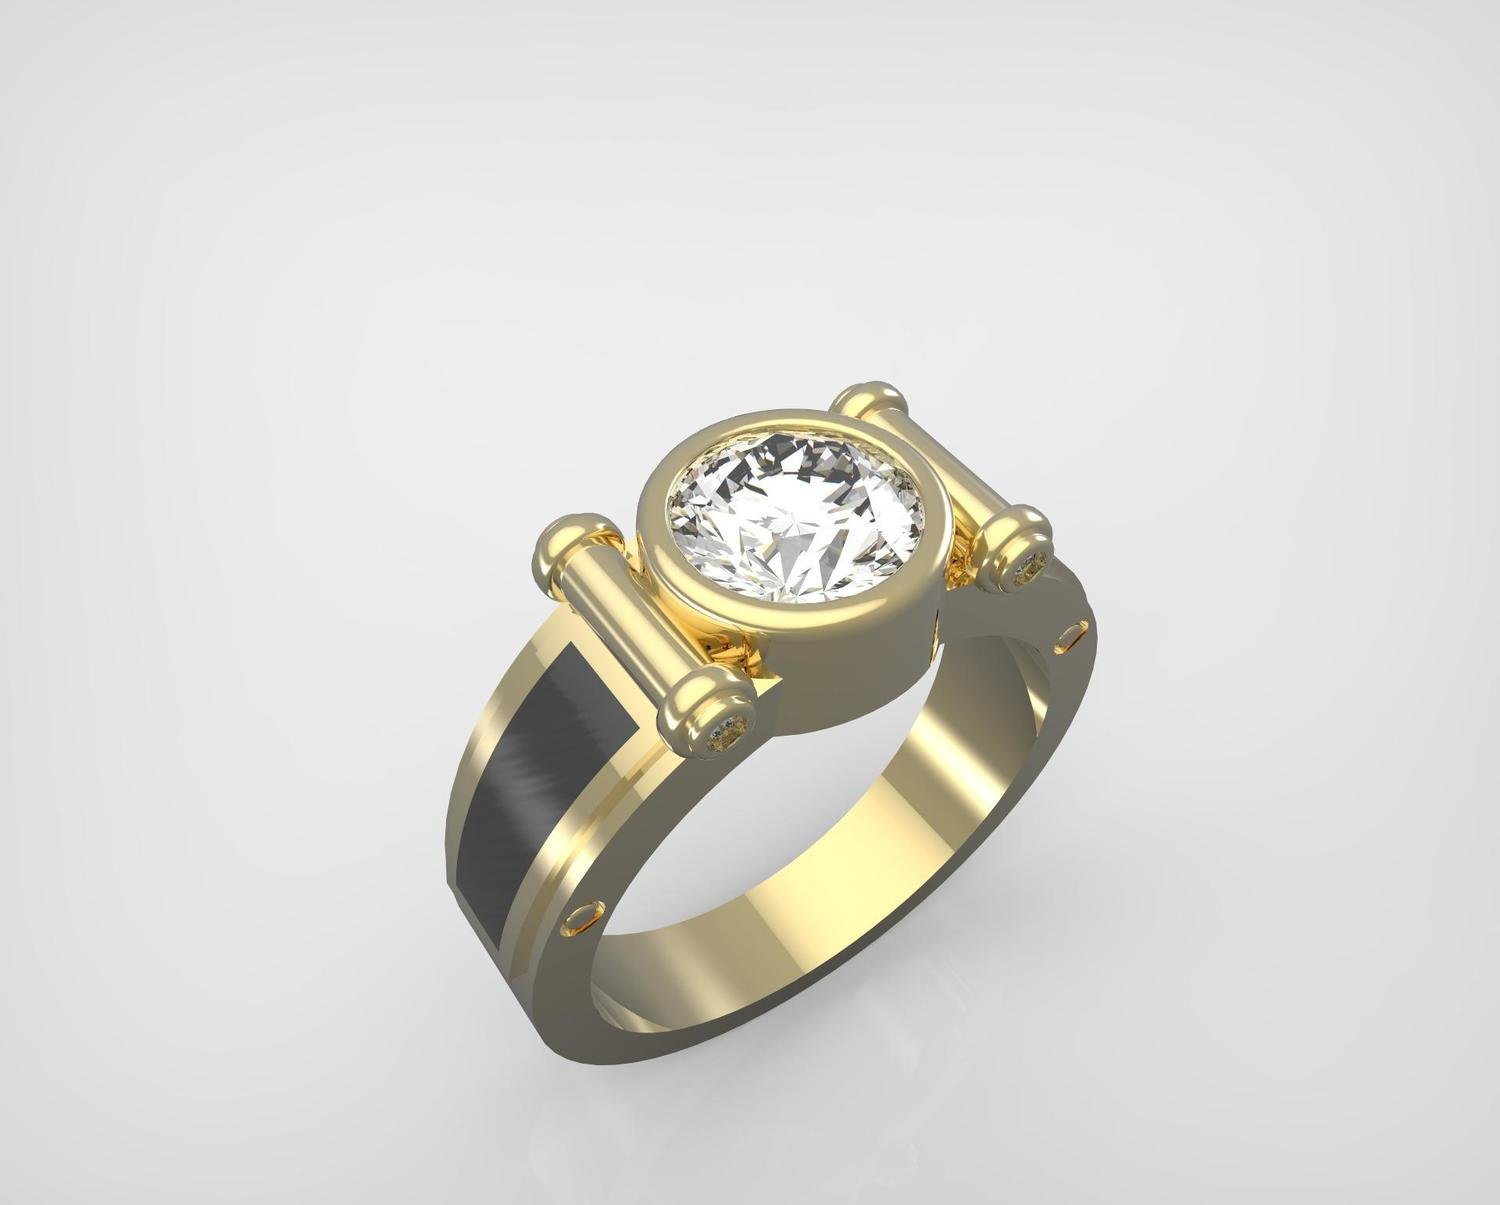 3D Model of Custom Signet Diamond Ring